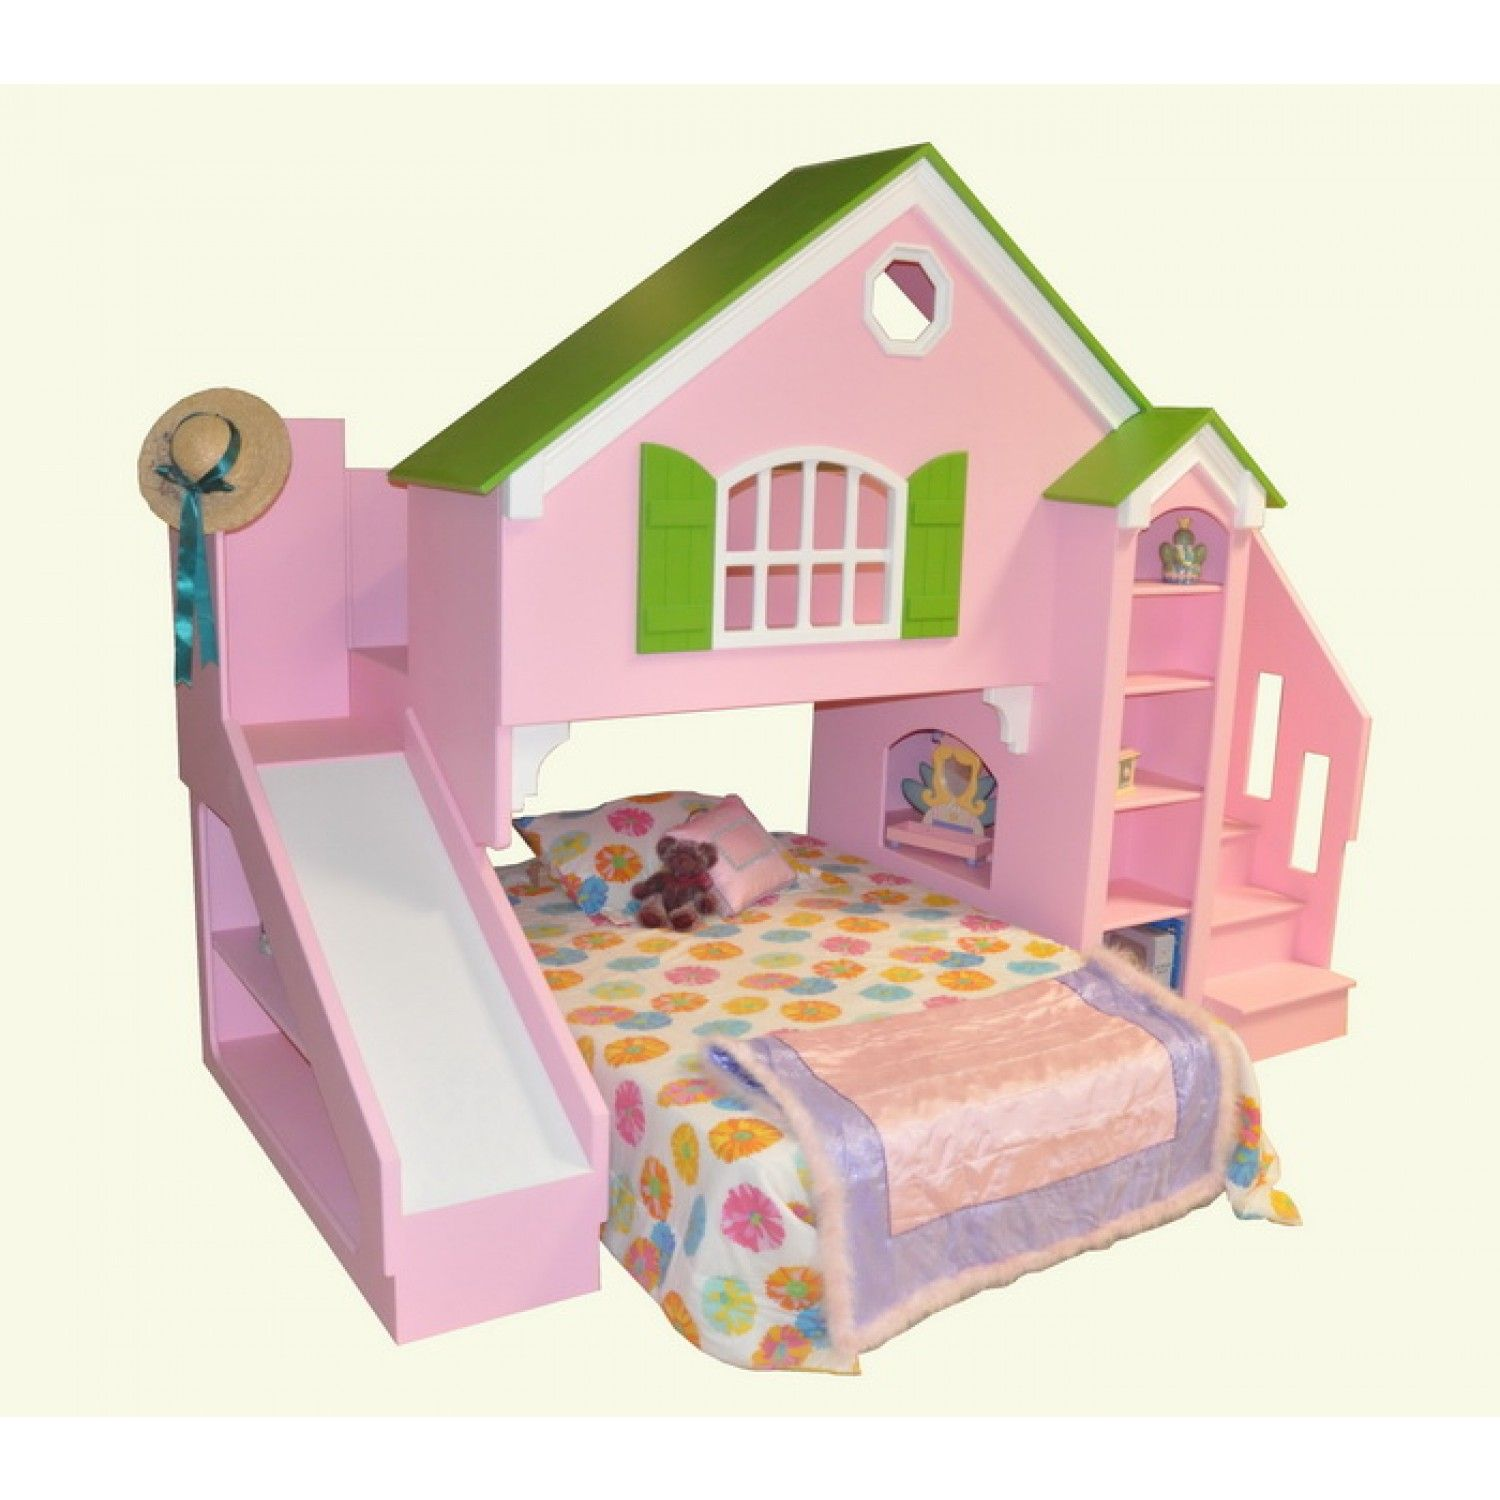 Bunk beds with slide and stairs - Dollhouse Bunk Bed With Slide Do You Like Disney S Tsum Tsum Plush Toys Visit